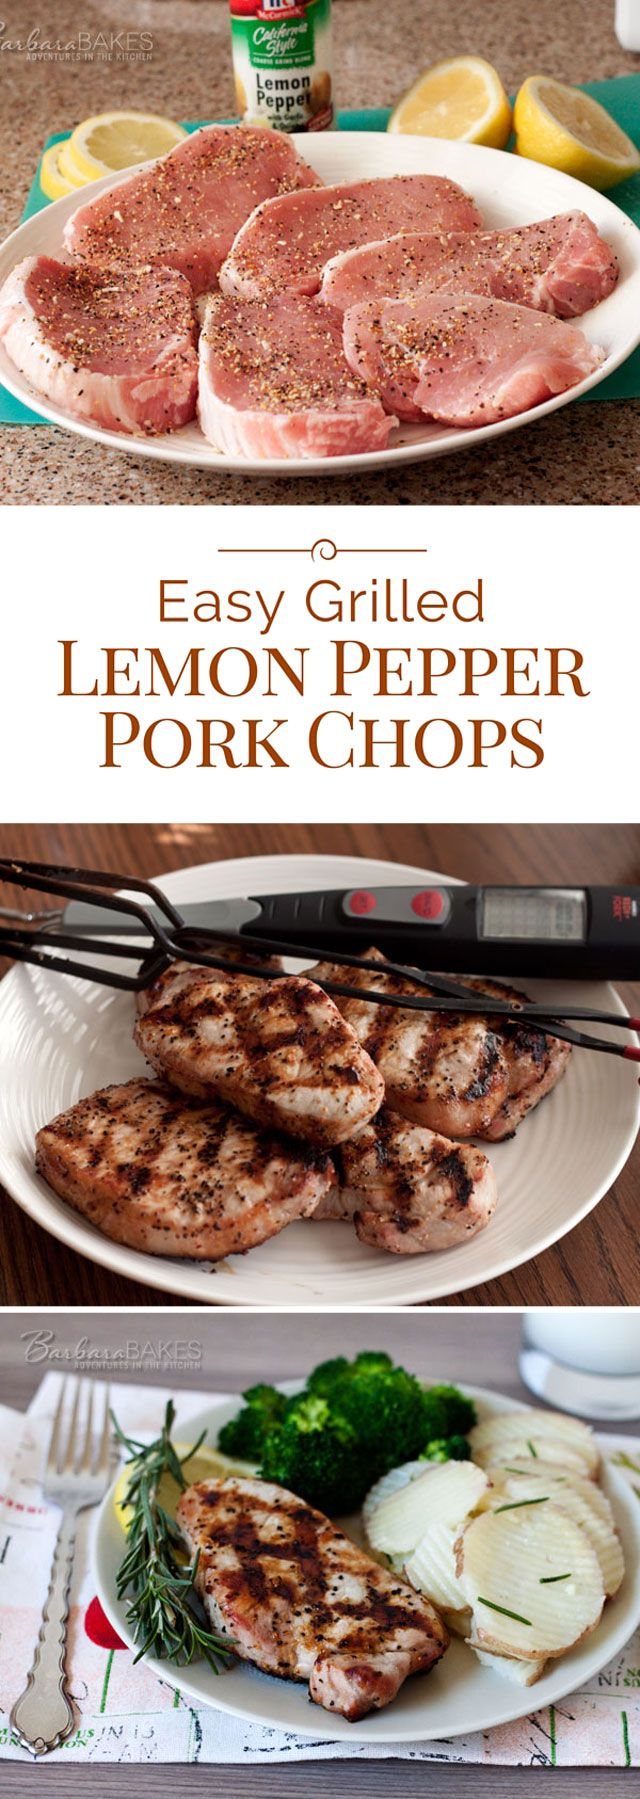 Top 25+ Best Boneless Pork Chops Ideas On Pinterest  Cooking Boneless Pork  Chops, Glazed Pork And 3 Ingredient Meals